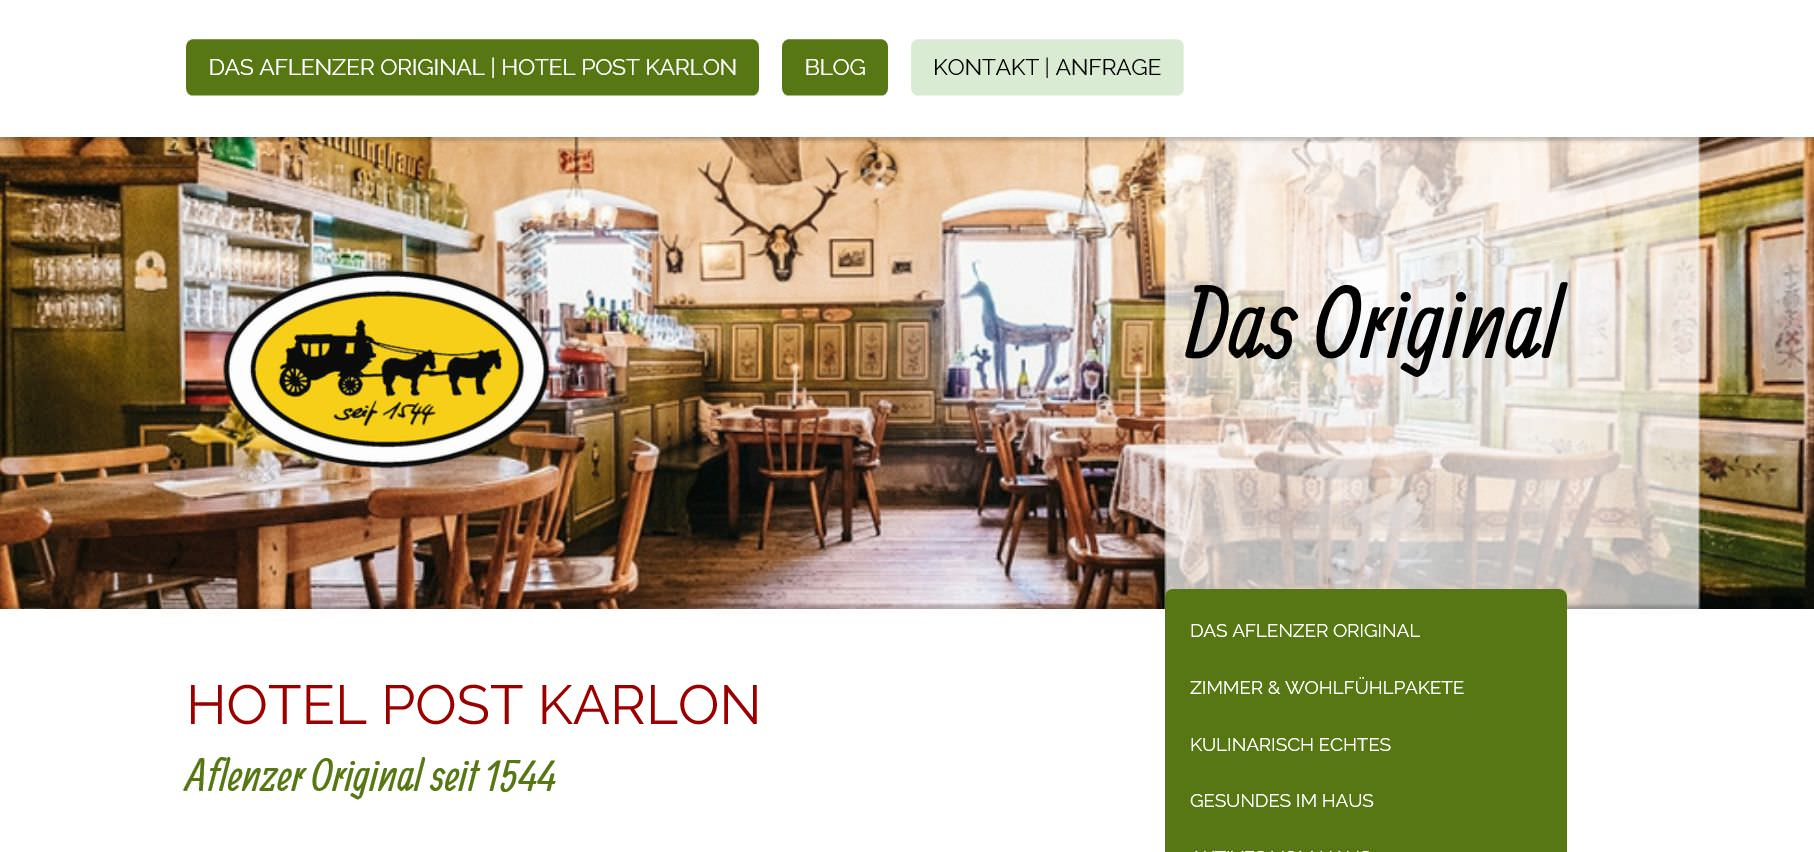 Neupositionierung, Text Website: Hotel Post Karlon [DAS Aflenzer Original]